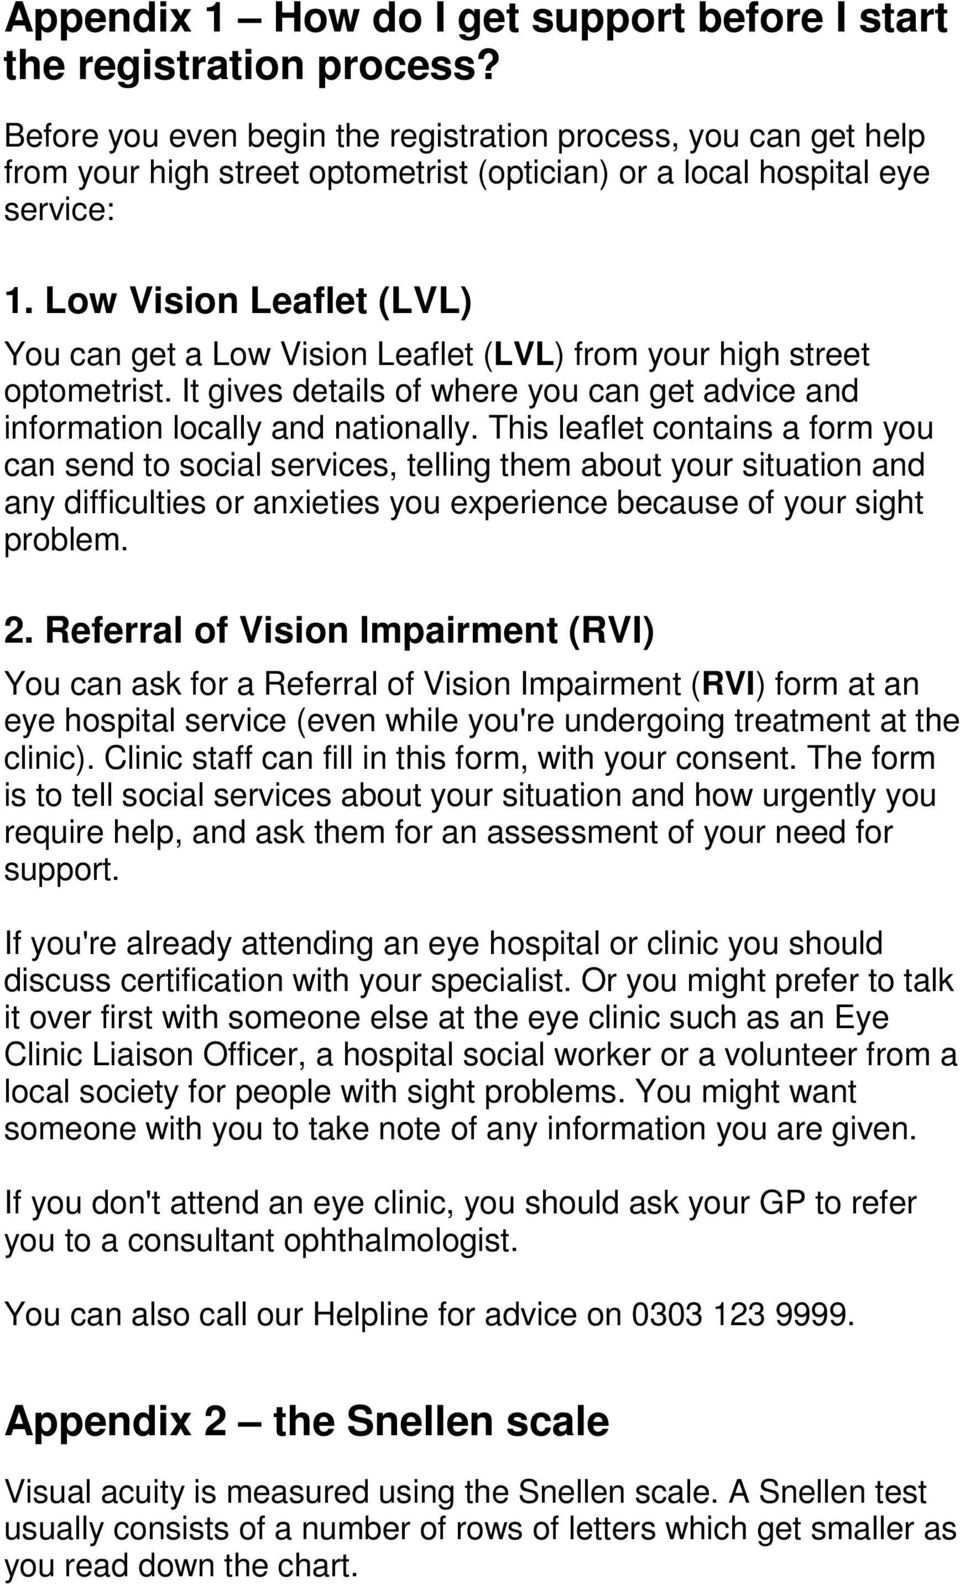 Low Vision Leaflet (LVL) You can get a Low Vision Leaflet (LVL) from your high street optometrist. It gives details of where you can get advice and information locally and nationally.